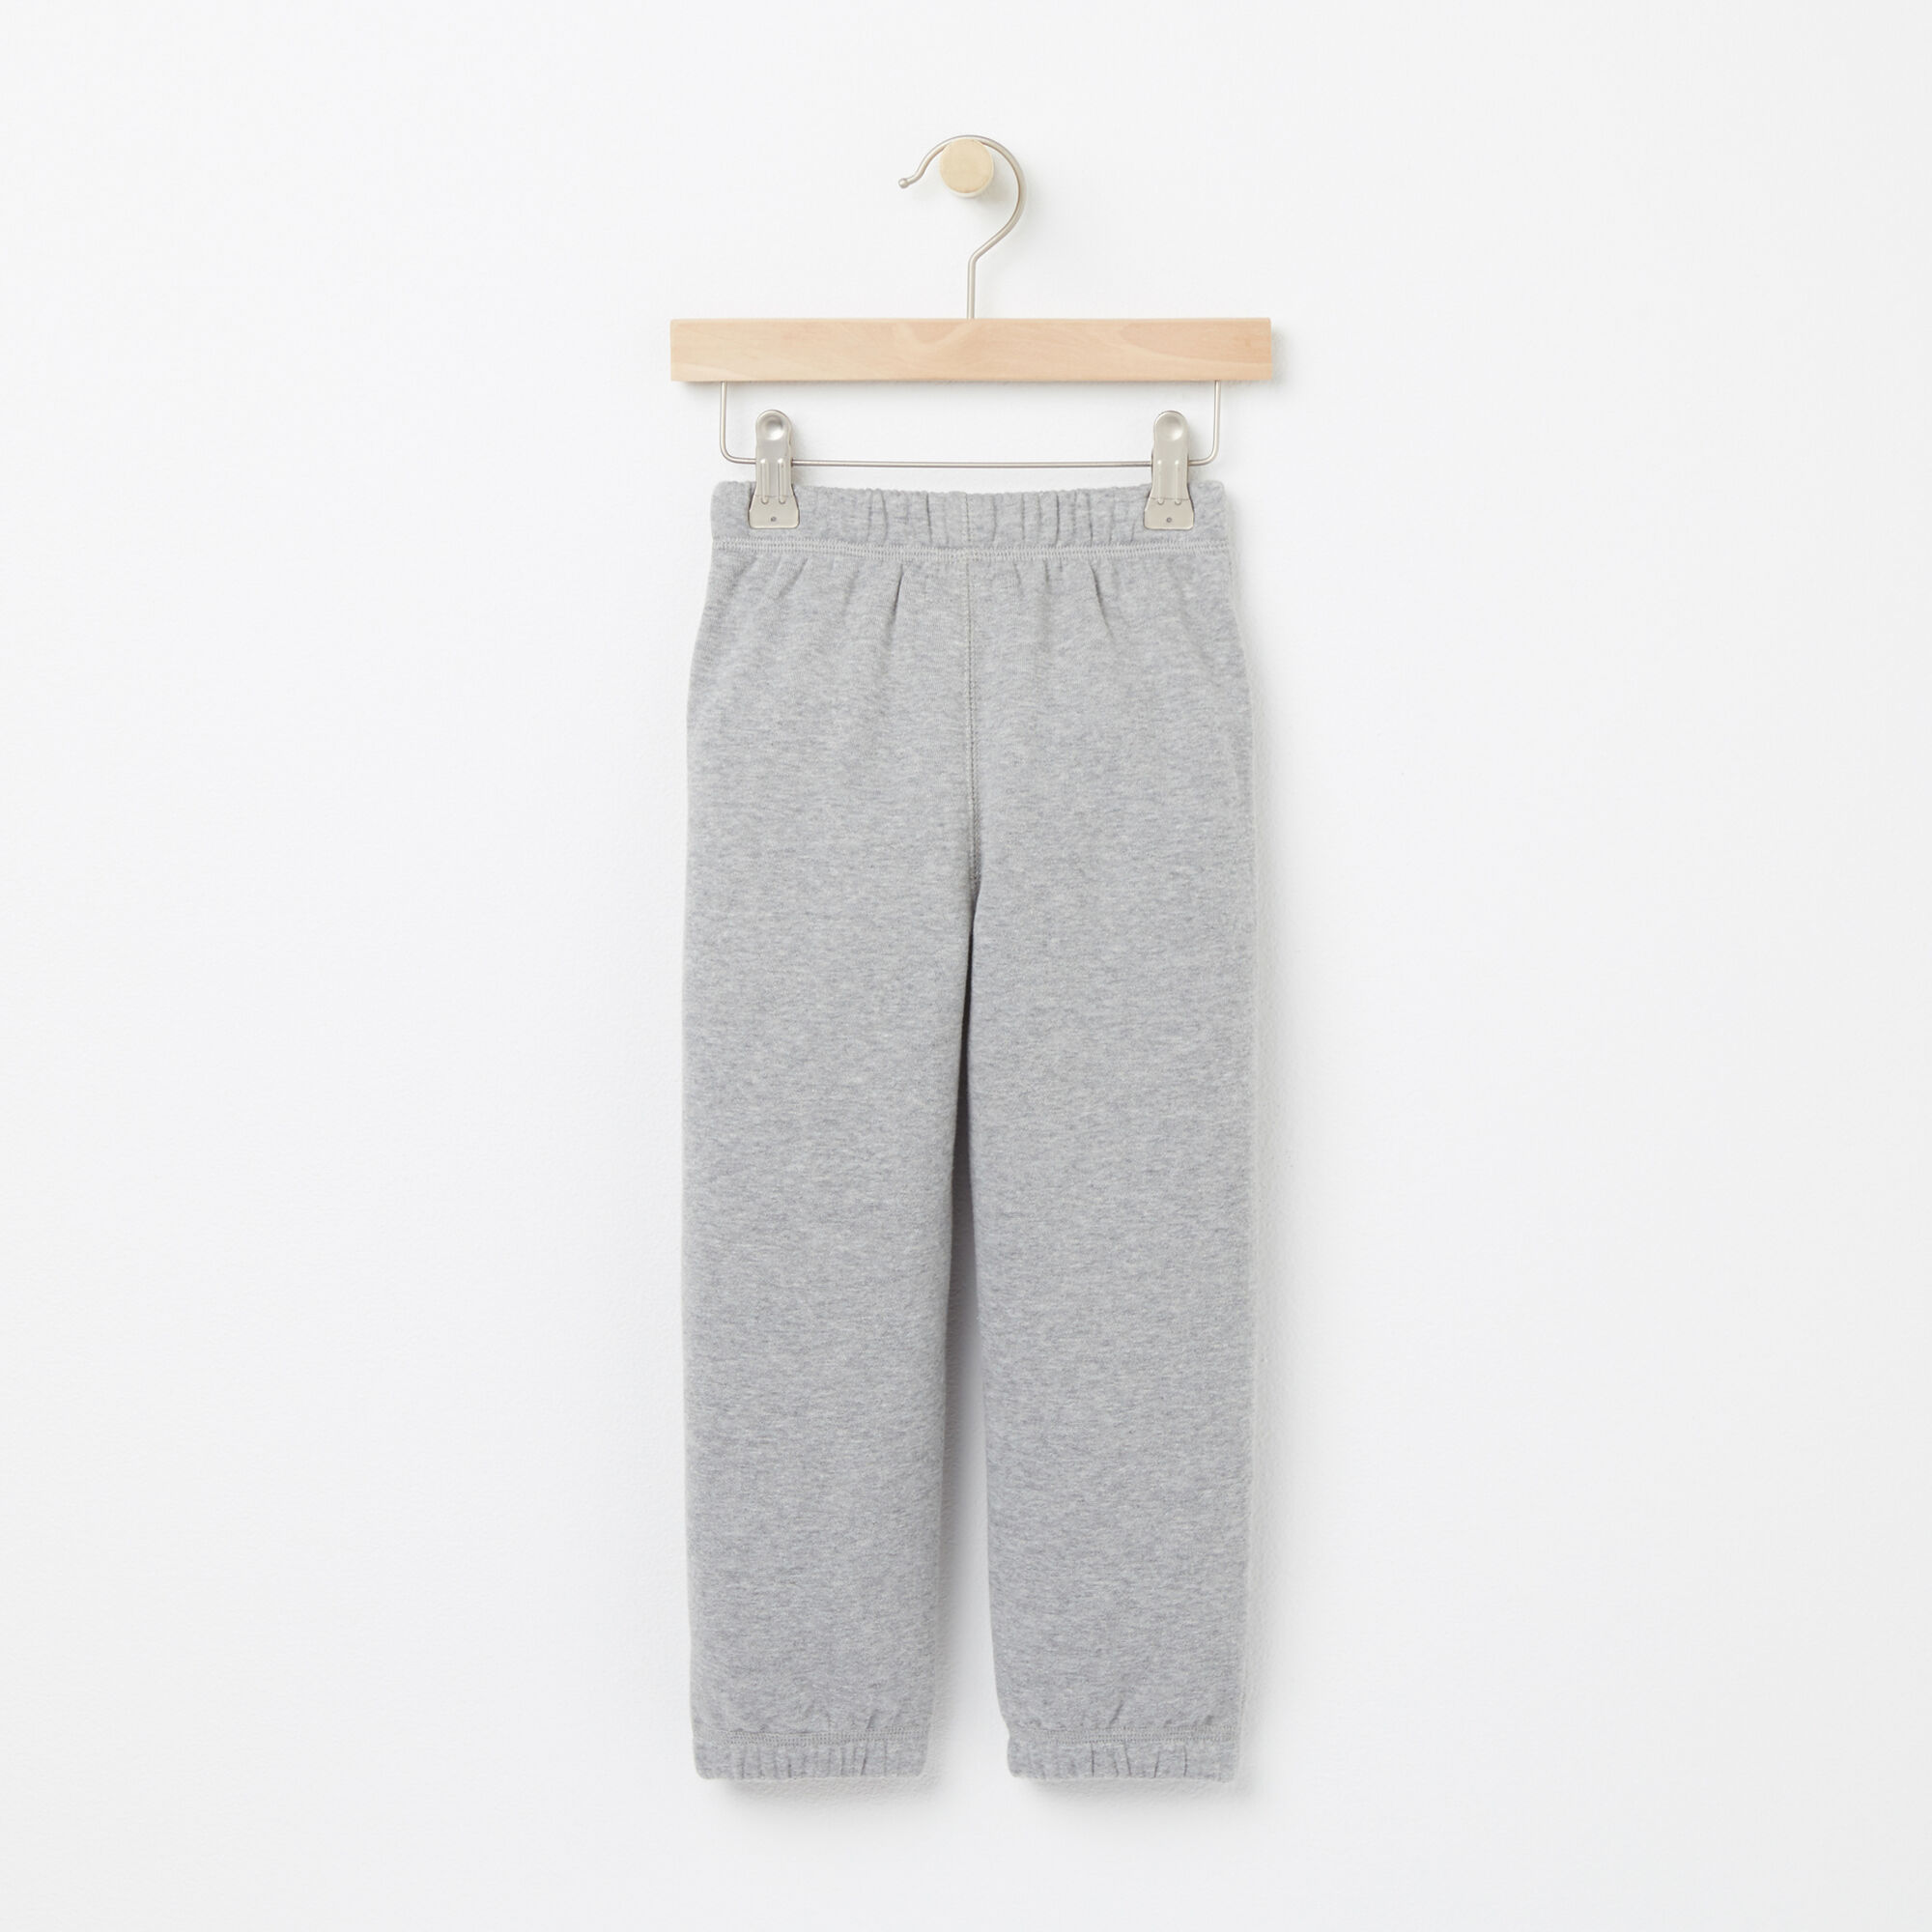 Tout-Petits Pant Co Original True North